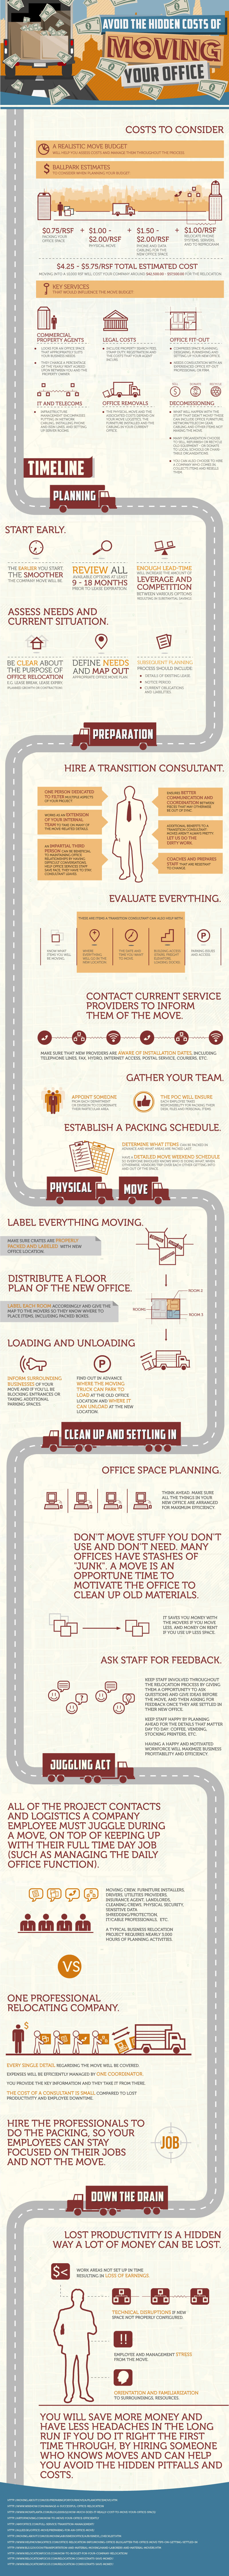 Hidden-Costs-of-Moving-an-Office-Infographic